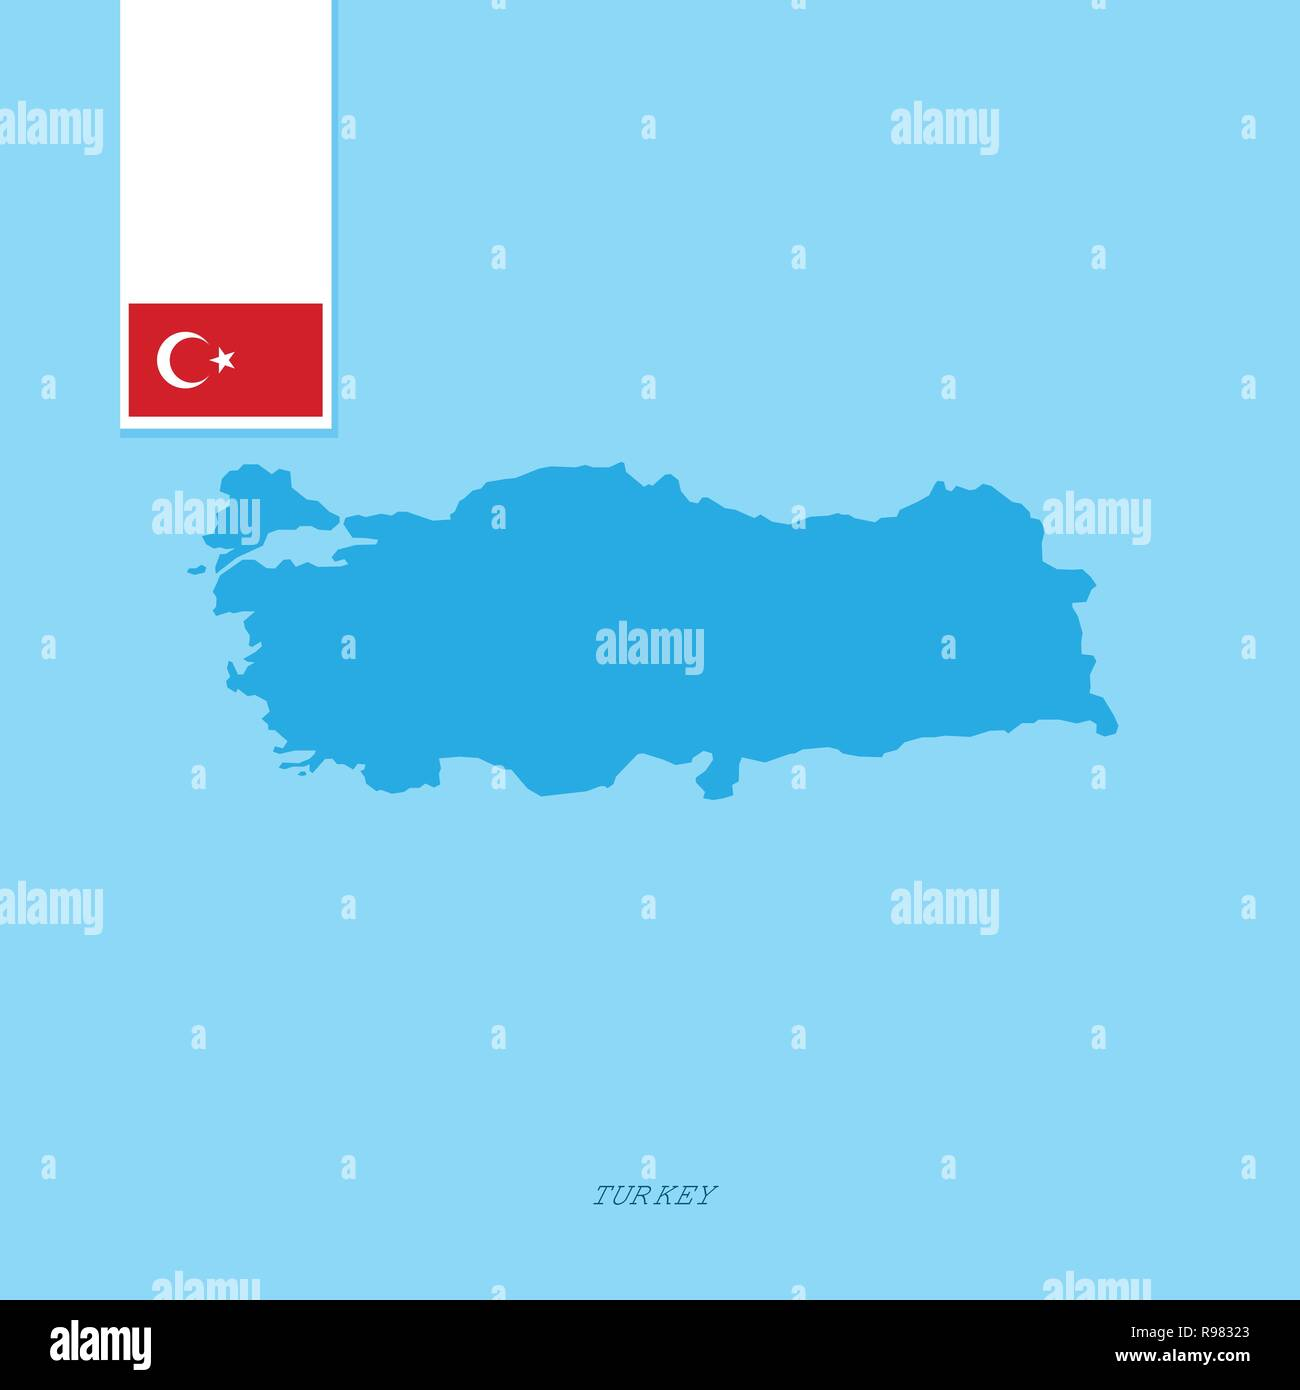 Turkey Country Map with Flag over Blue background Stock Vector Art on